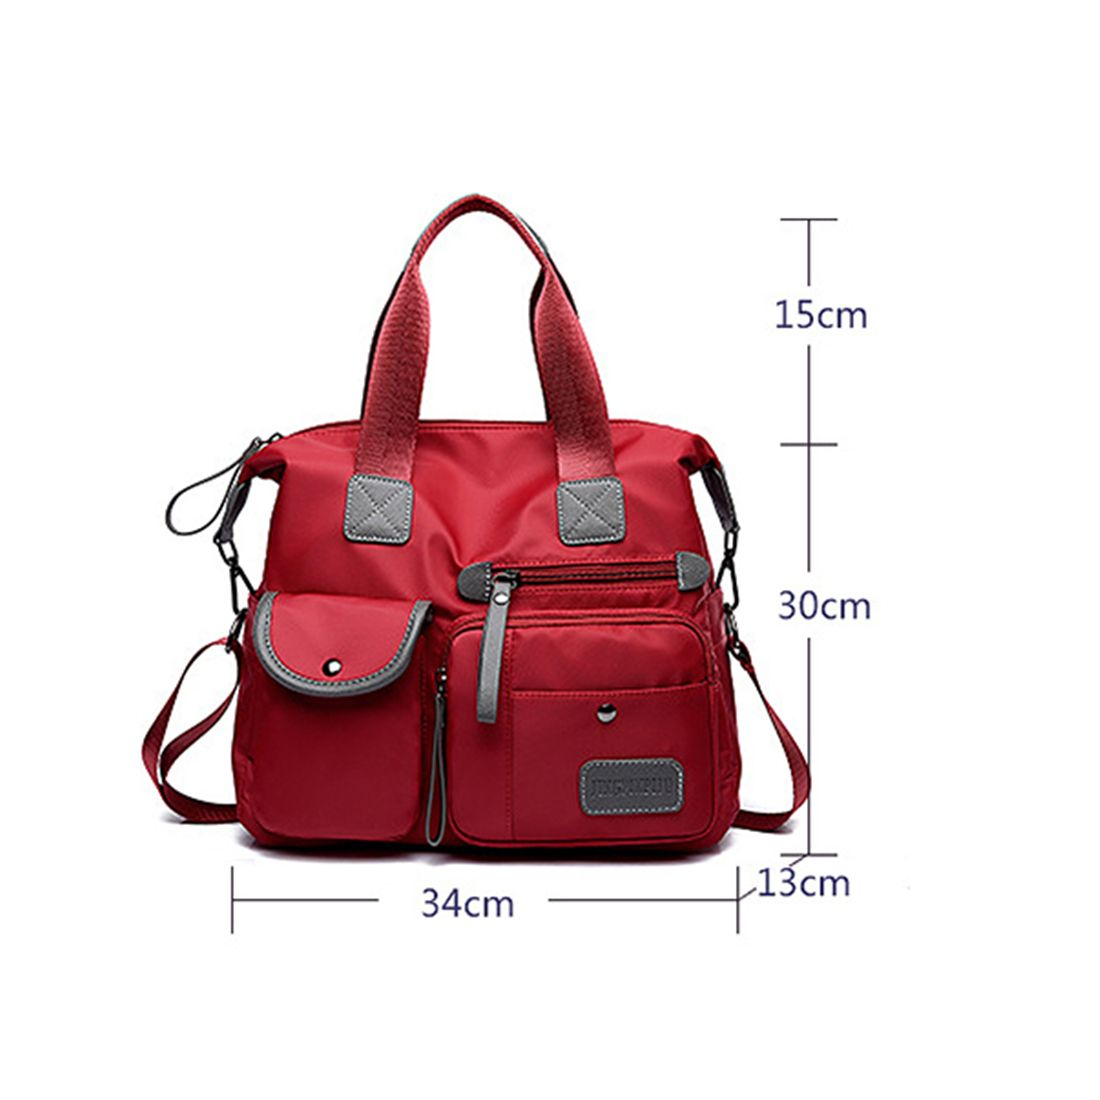 HEBA New Ladies Fashion Waterproof Oxford Tote Bag Casual Nylon Shoulder Bag Mummy Bag Large Capacity Canvas Bag